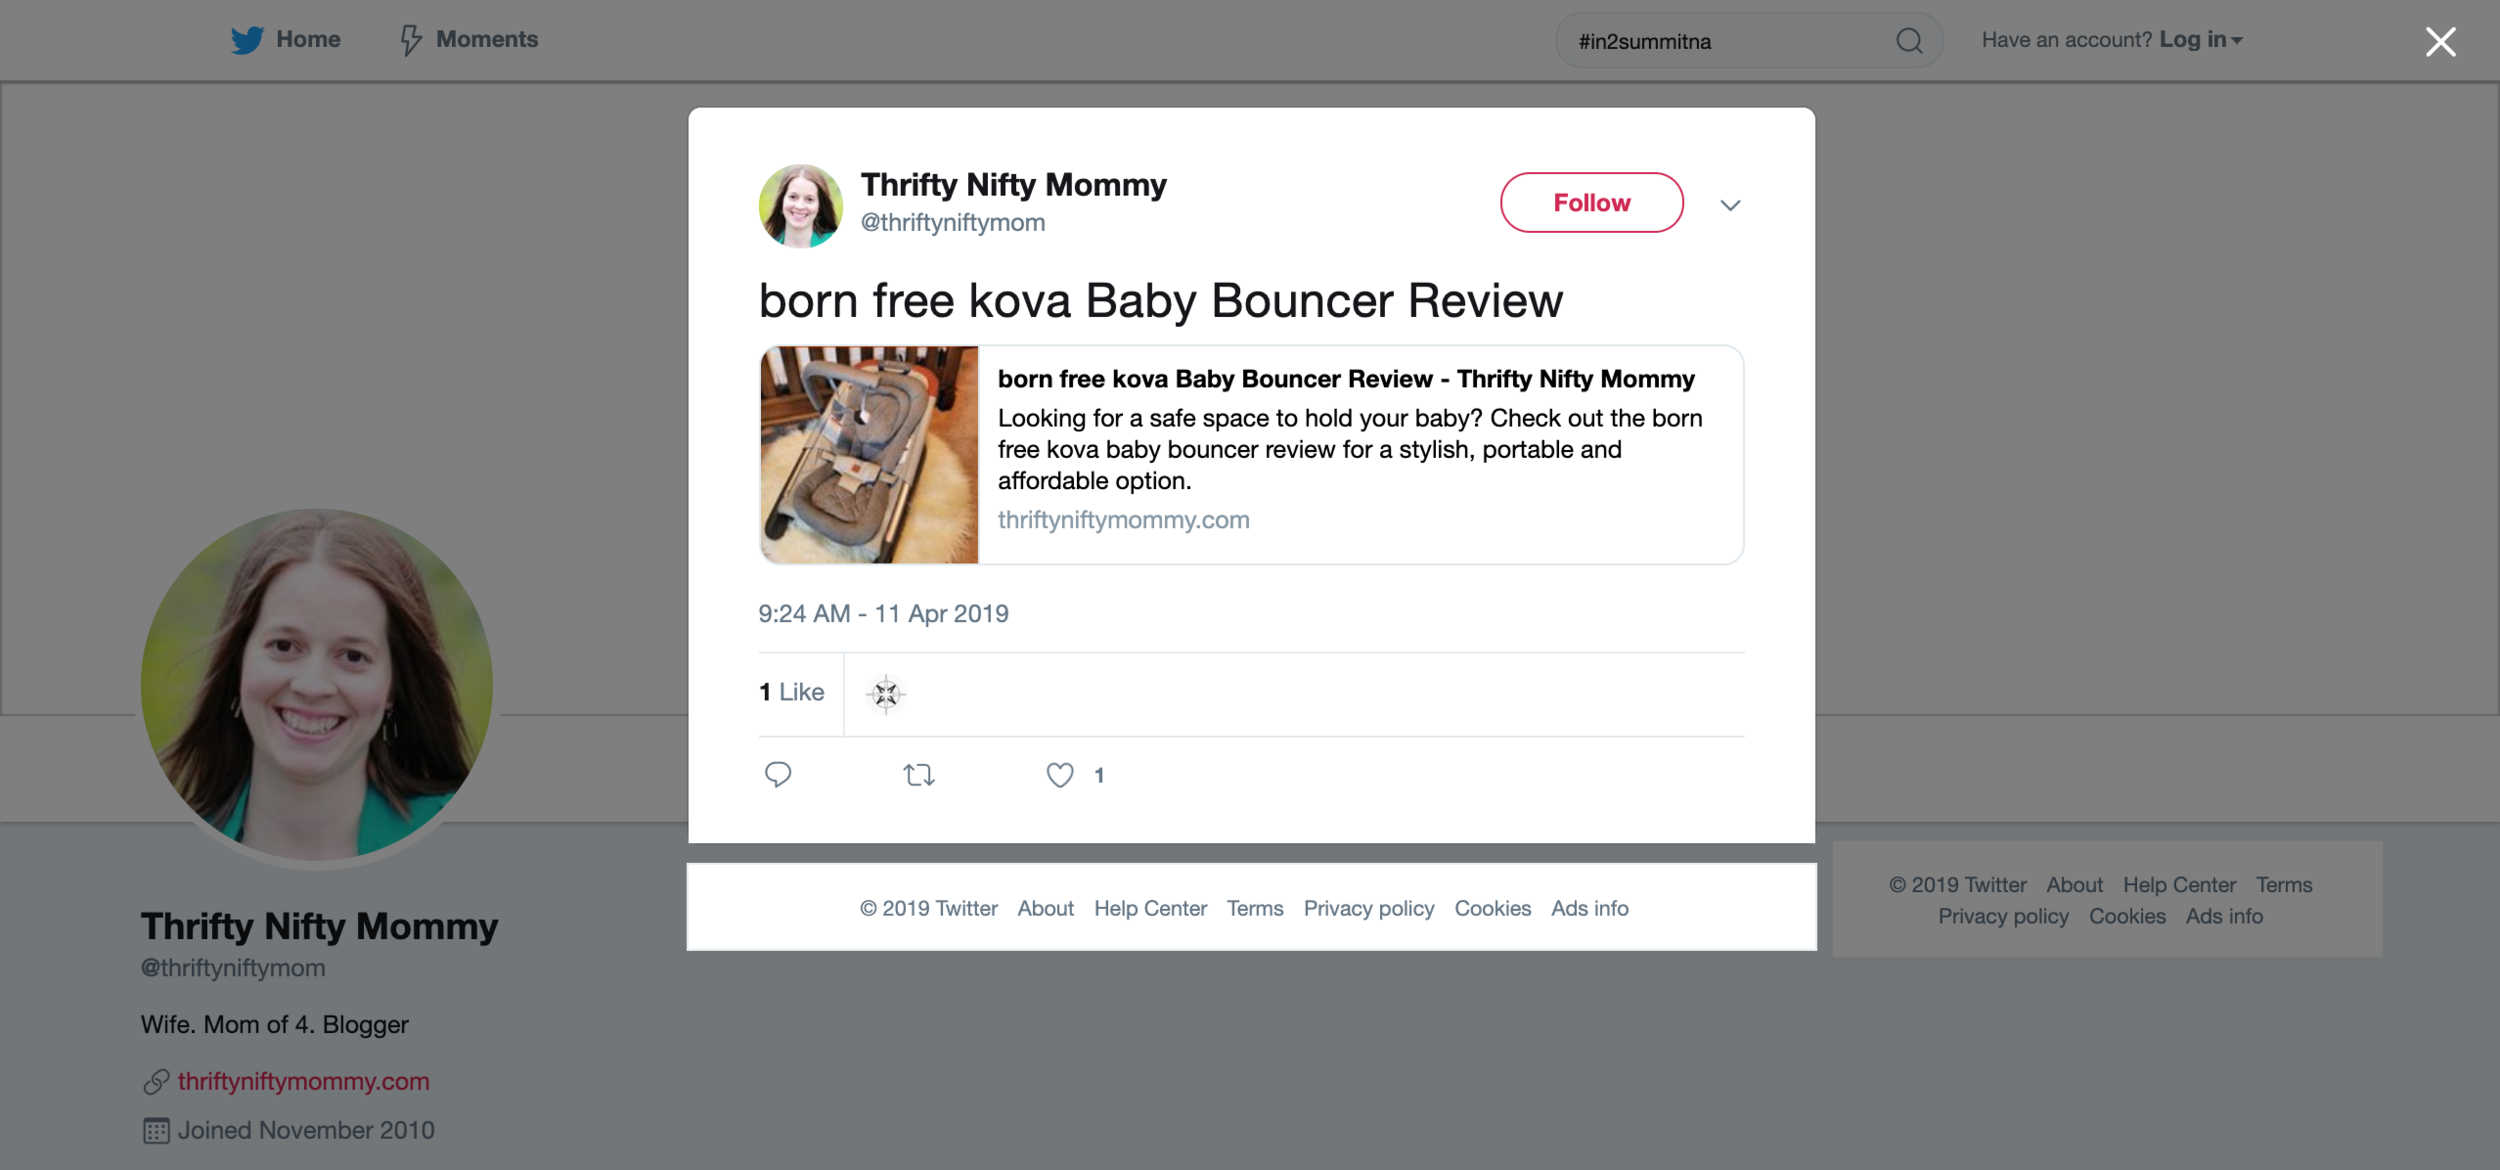 2019.04.11_Thrifty Nifty Mommy, Twitter_born free kova.png